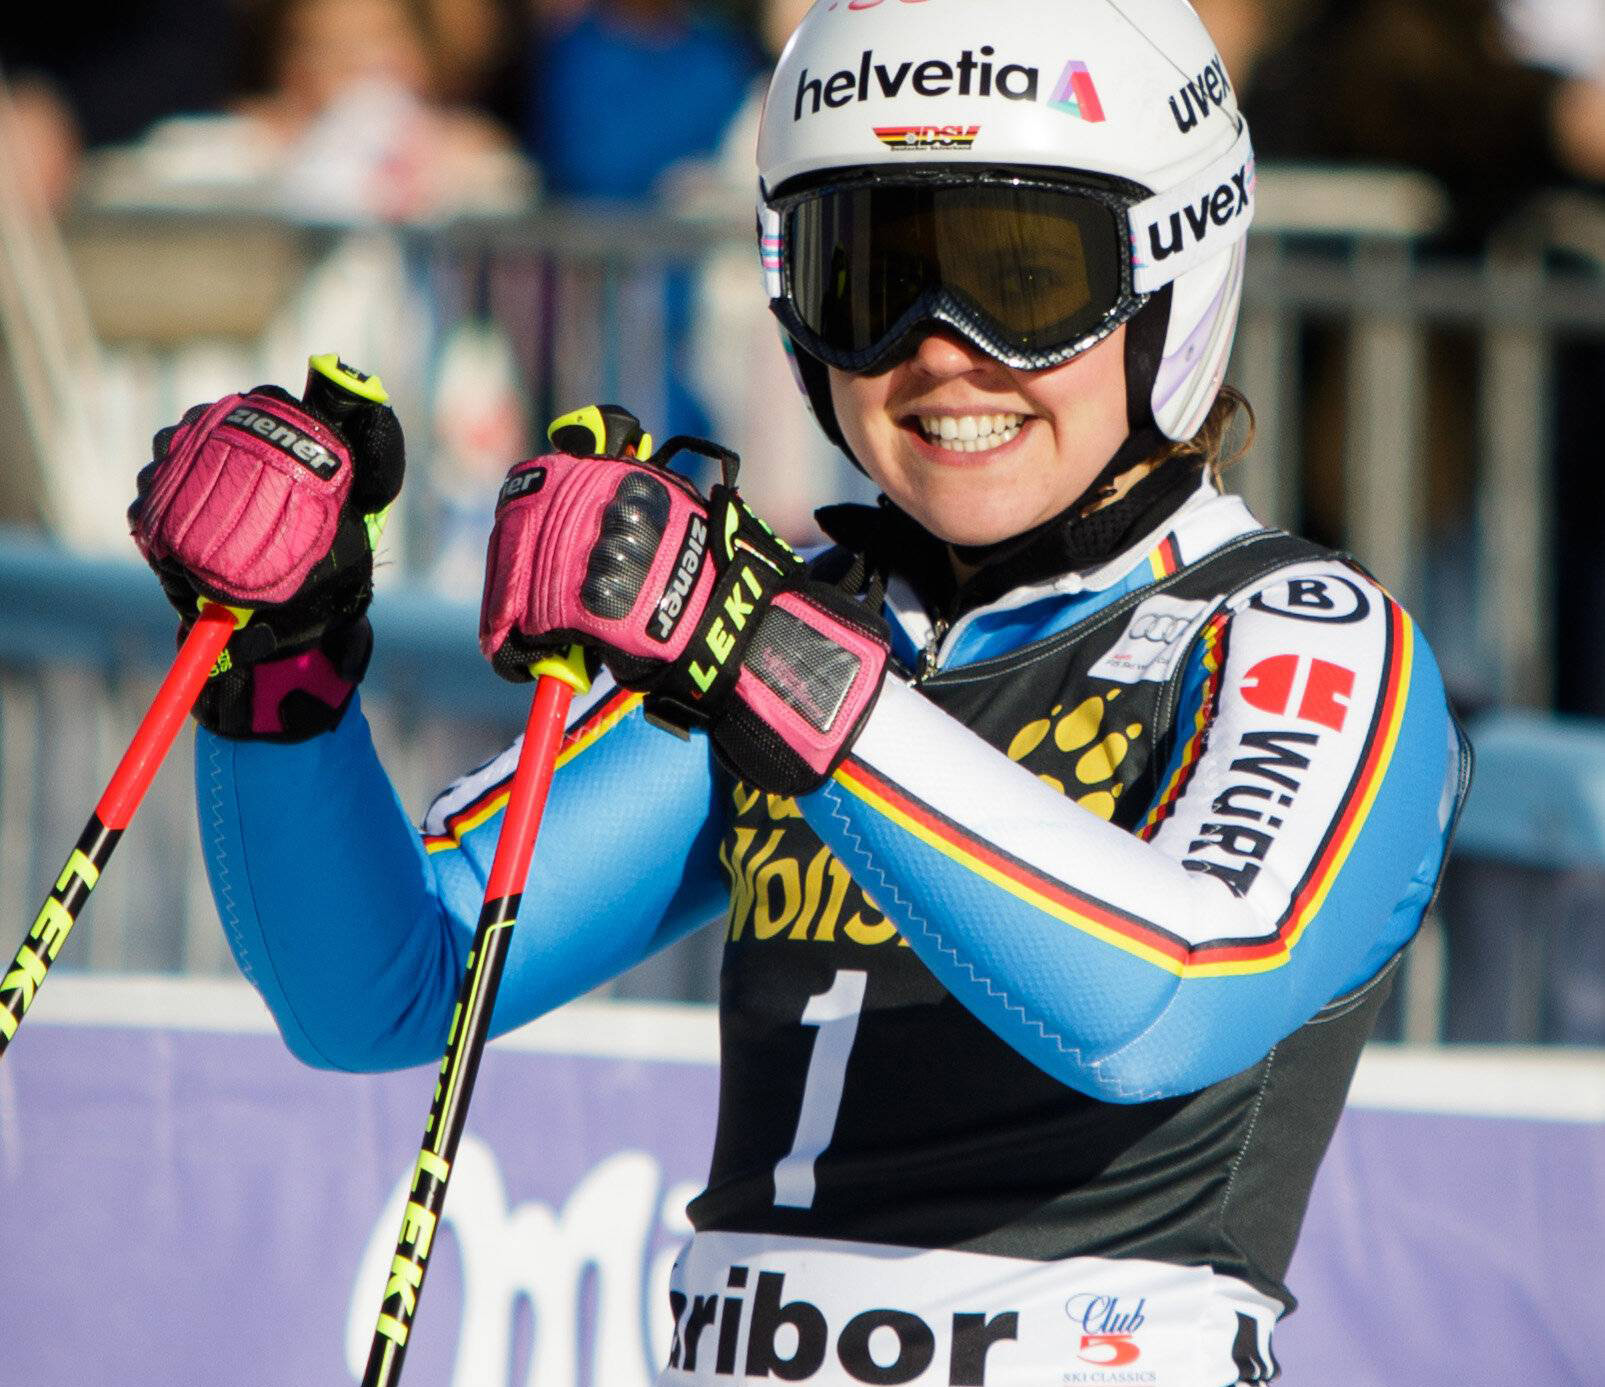 Victory In The Giant Slalom